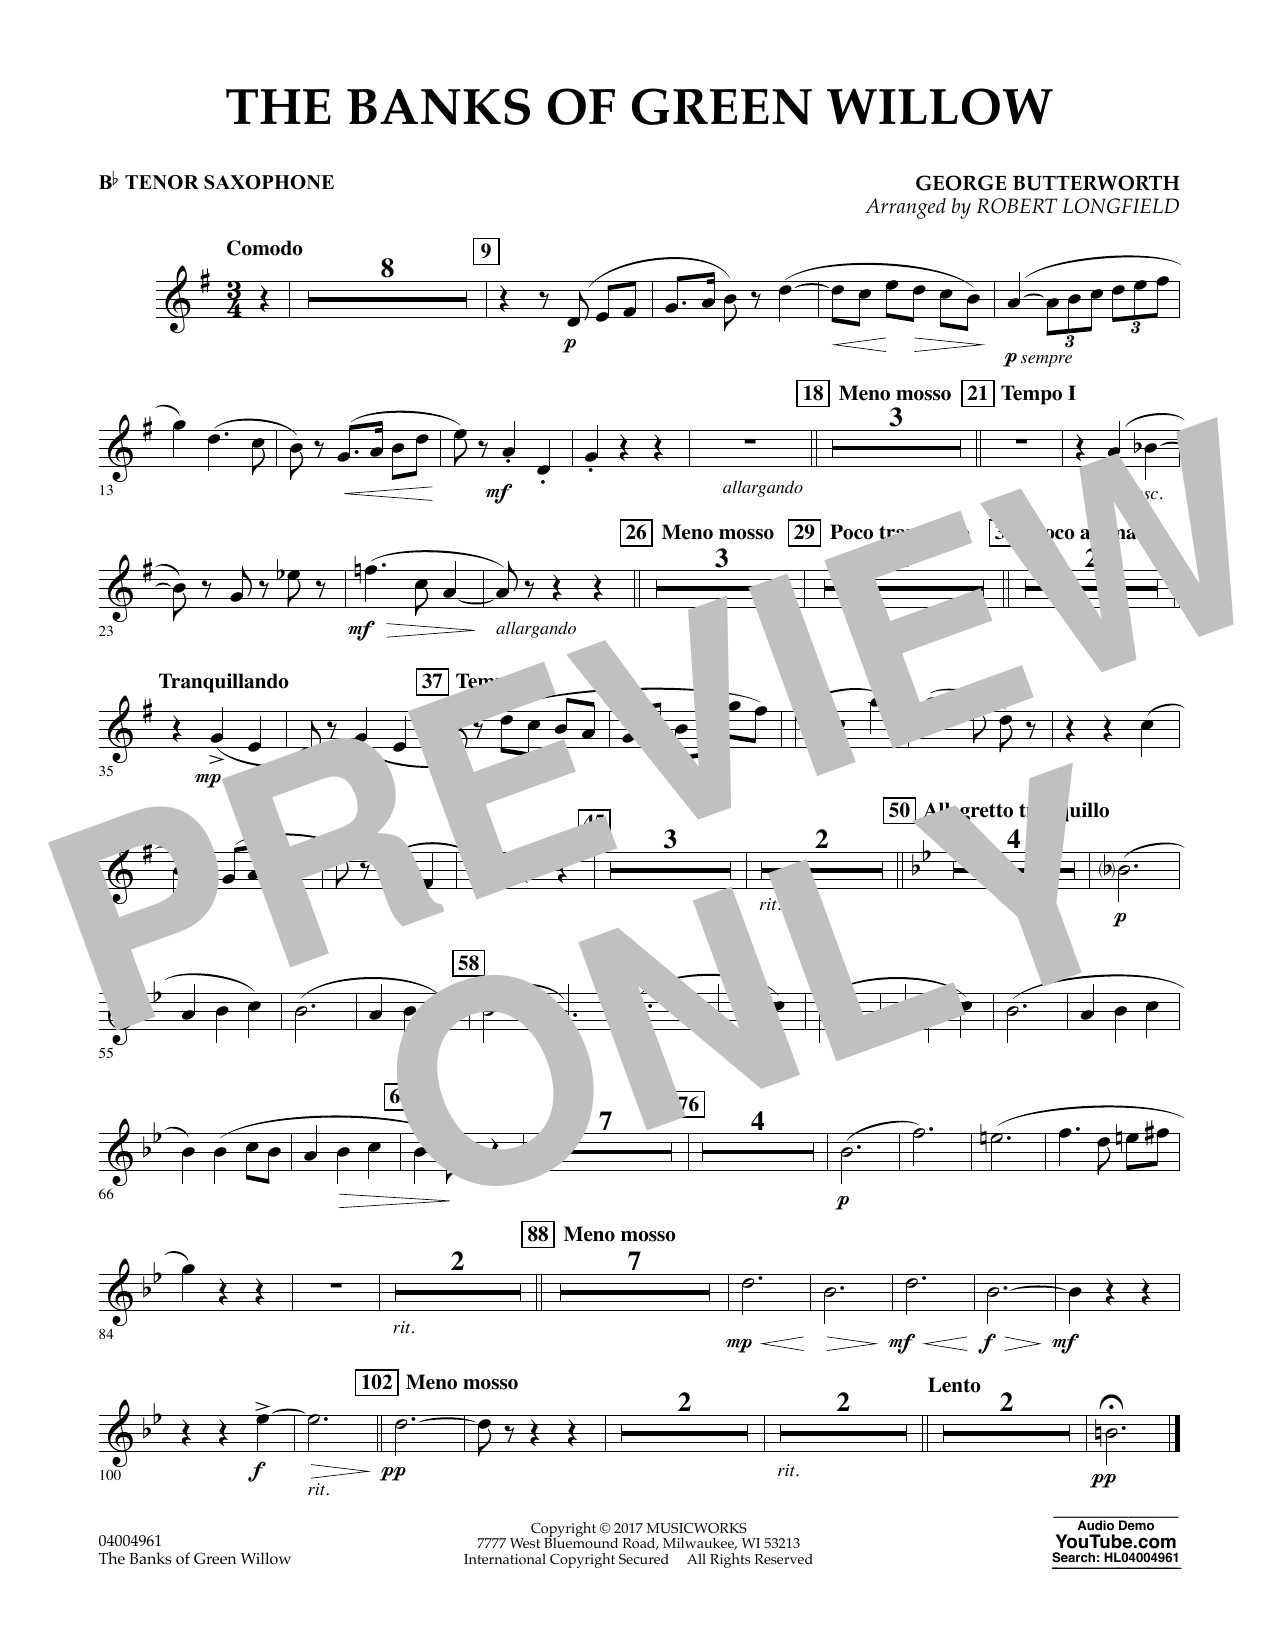 Robert Longfield The Banks of Green Willow - Bb Tenor Saxophone sheet music notes and chords. Download Printable PDF.